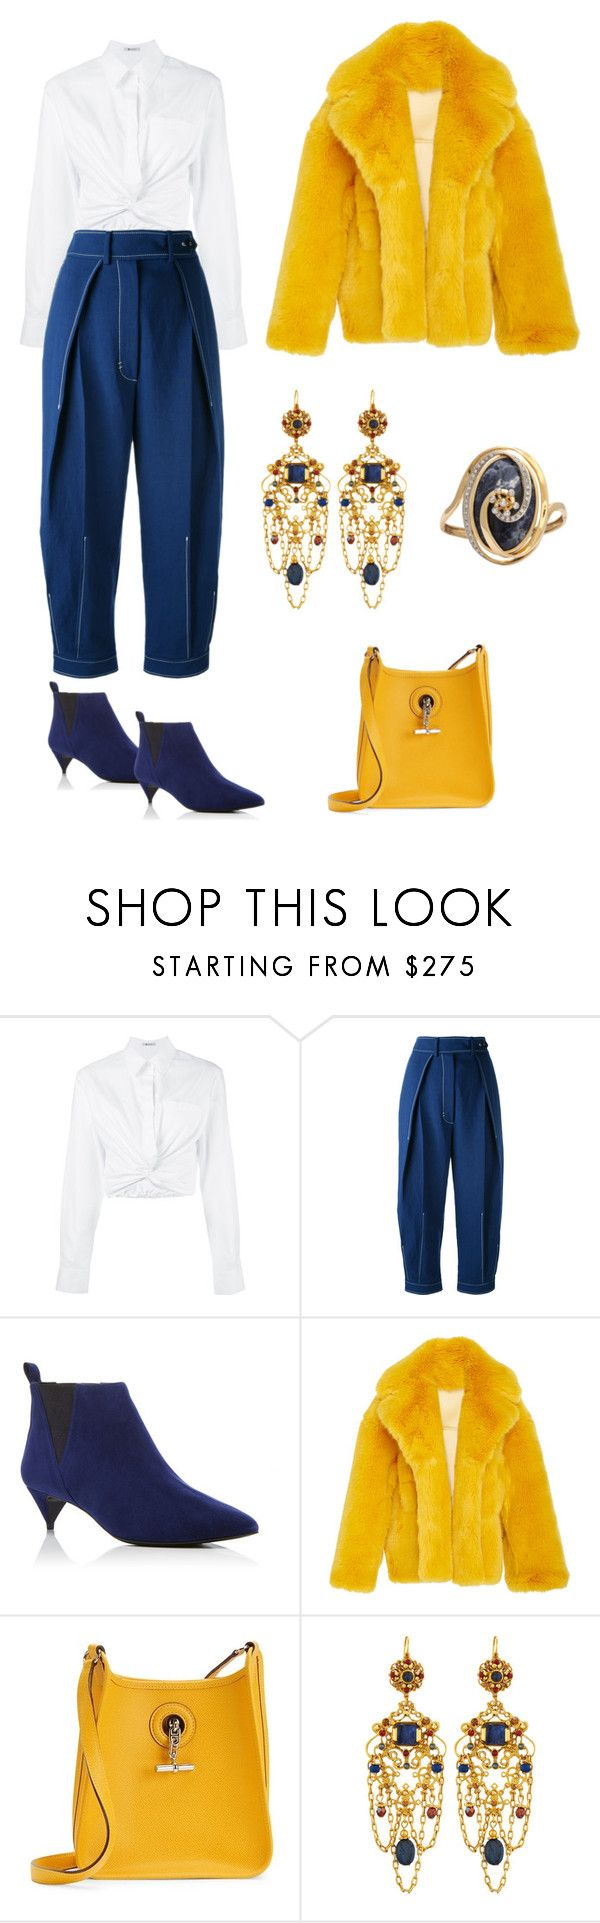 """Smart & Sassy"" by karen-galves ❤ liked on Polyvore featuring T By Alexander Wang, Sportmax, Pierre Hardy, Hermès, Jose & Maria Barrera and Lalaounis"